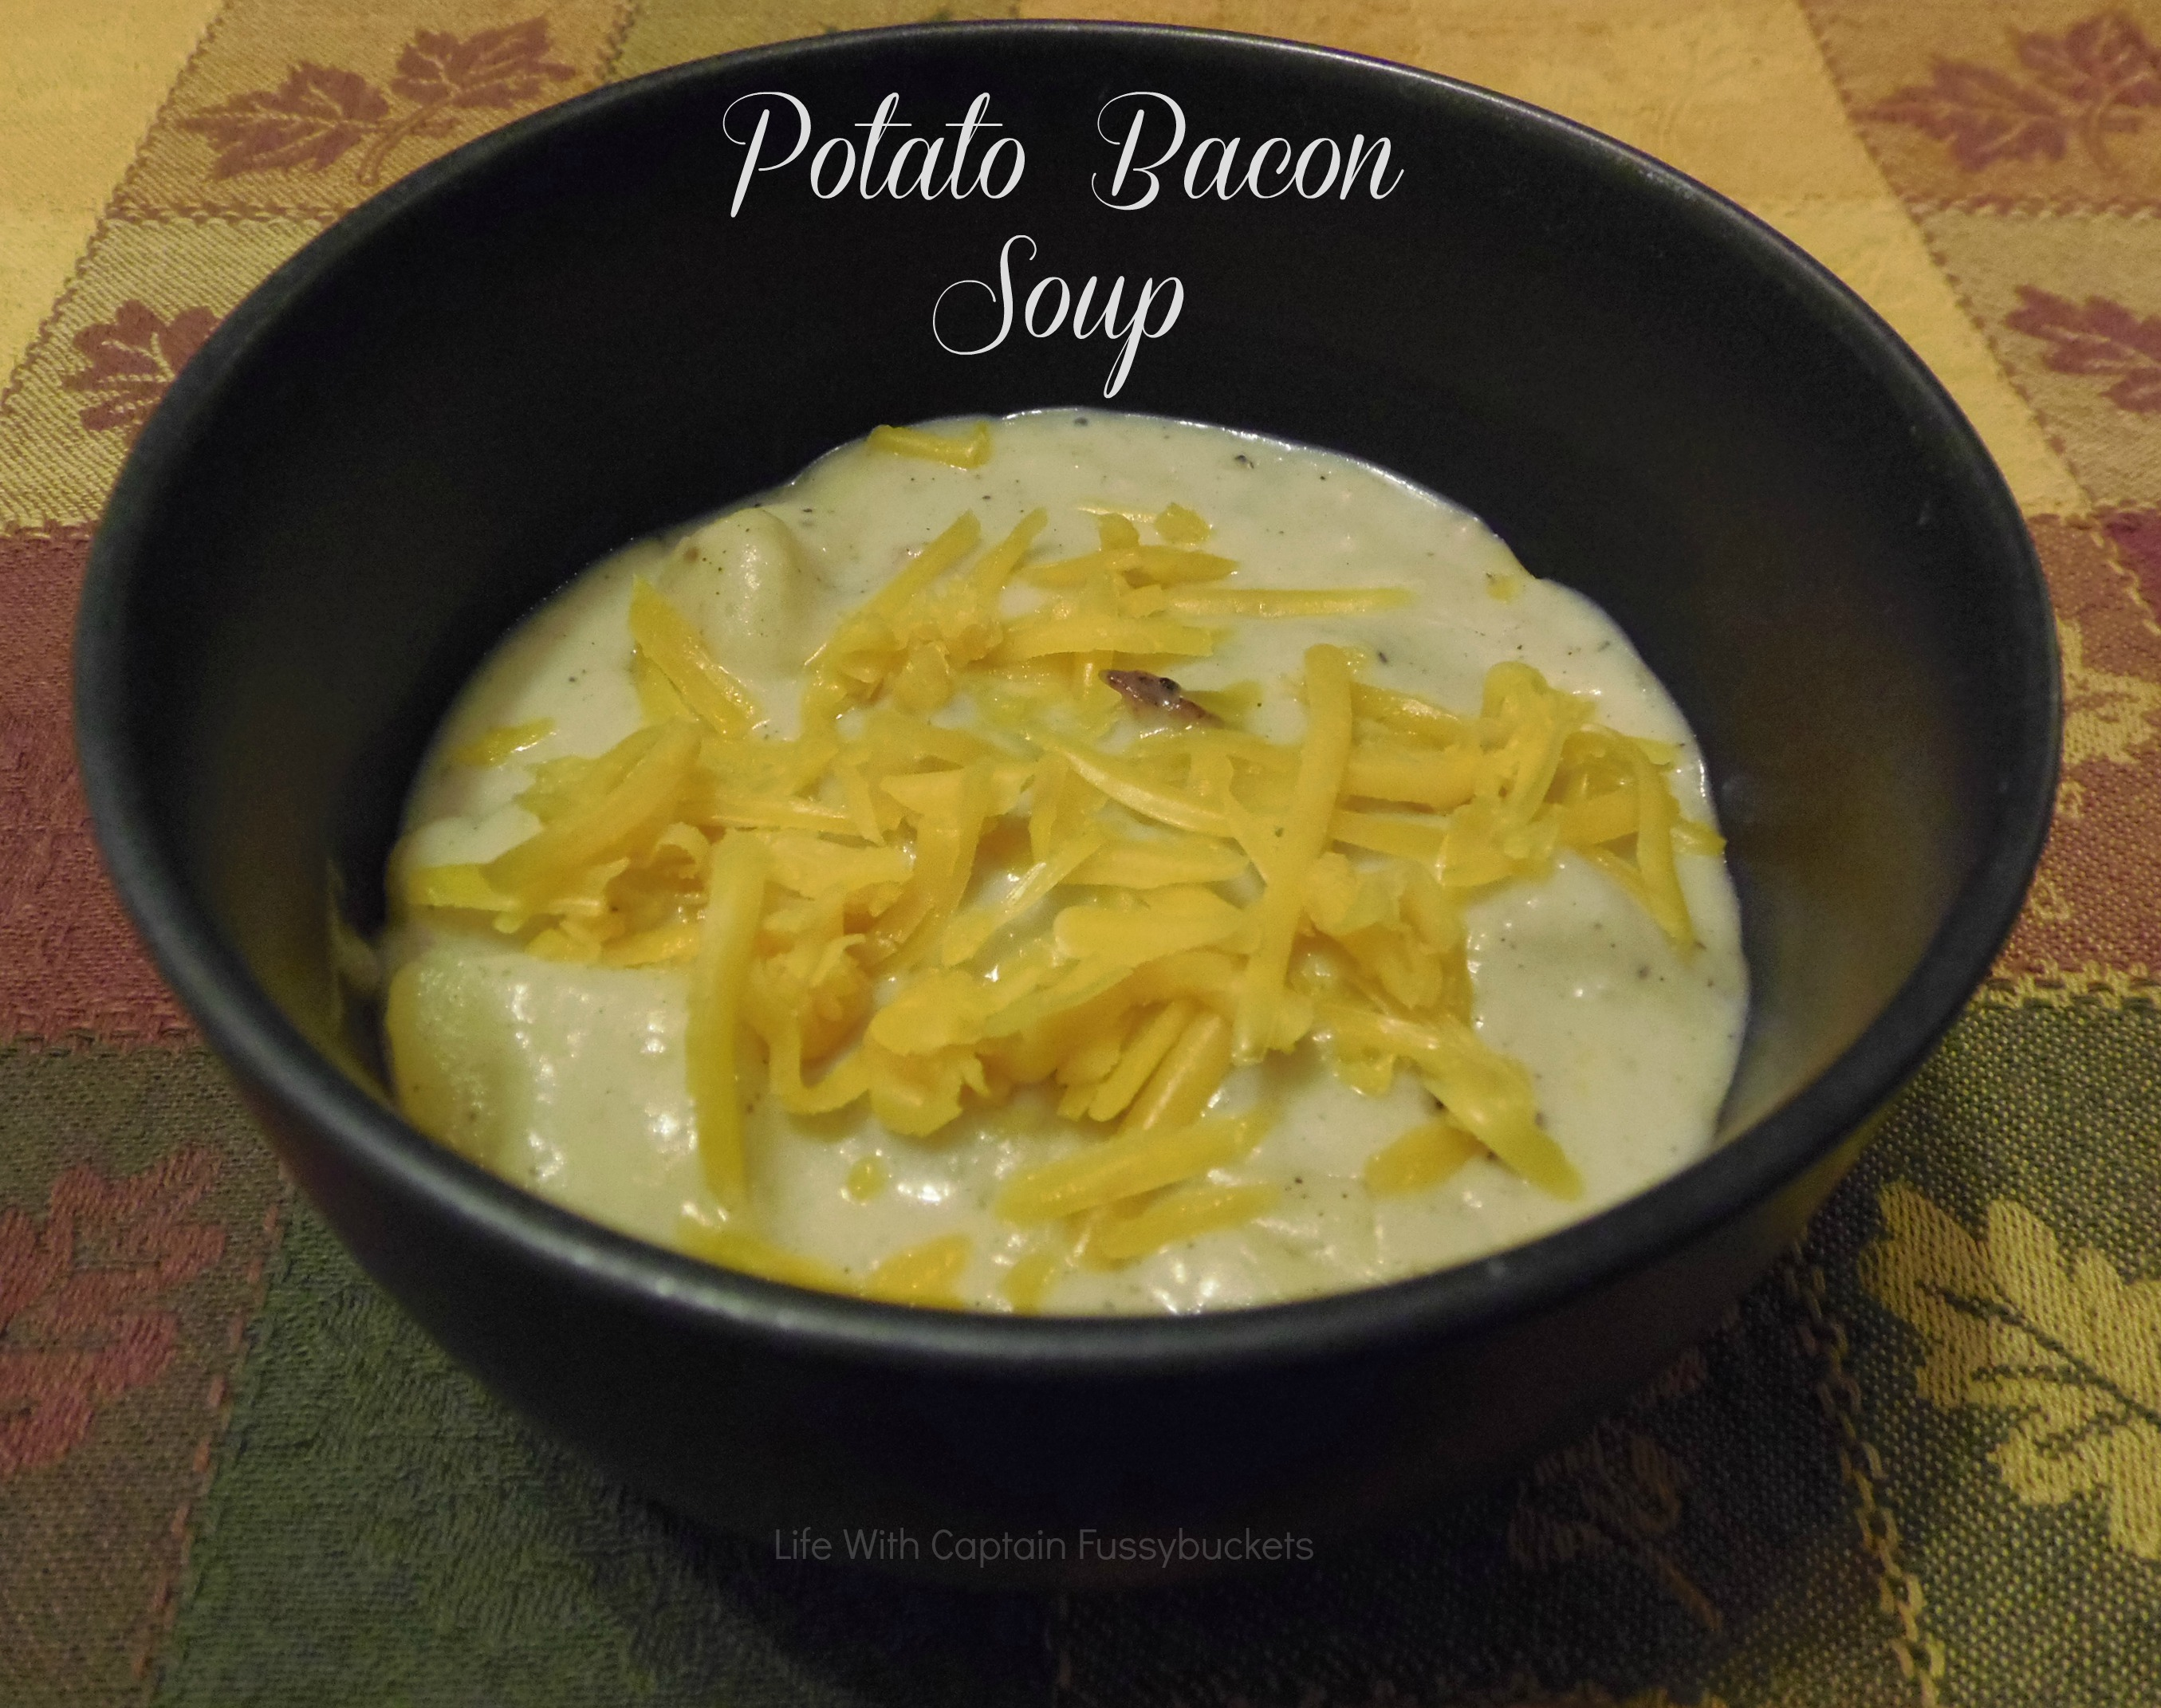 The Fancy Dinner {and a Potato Bacon Soup Recipe!}